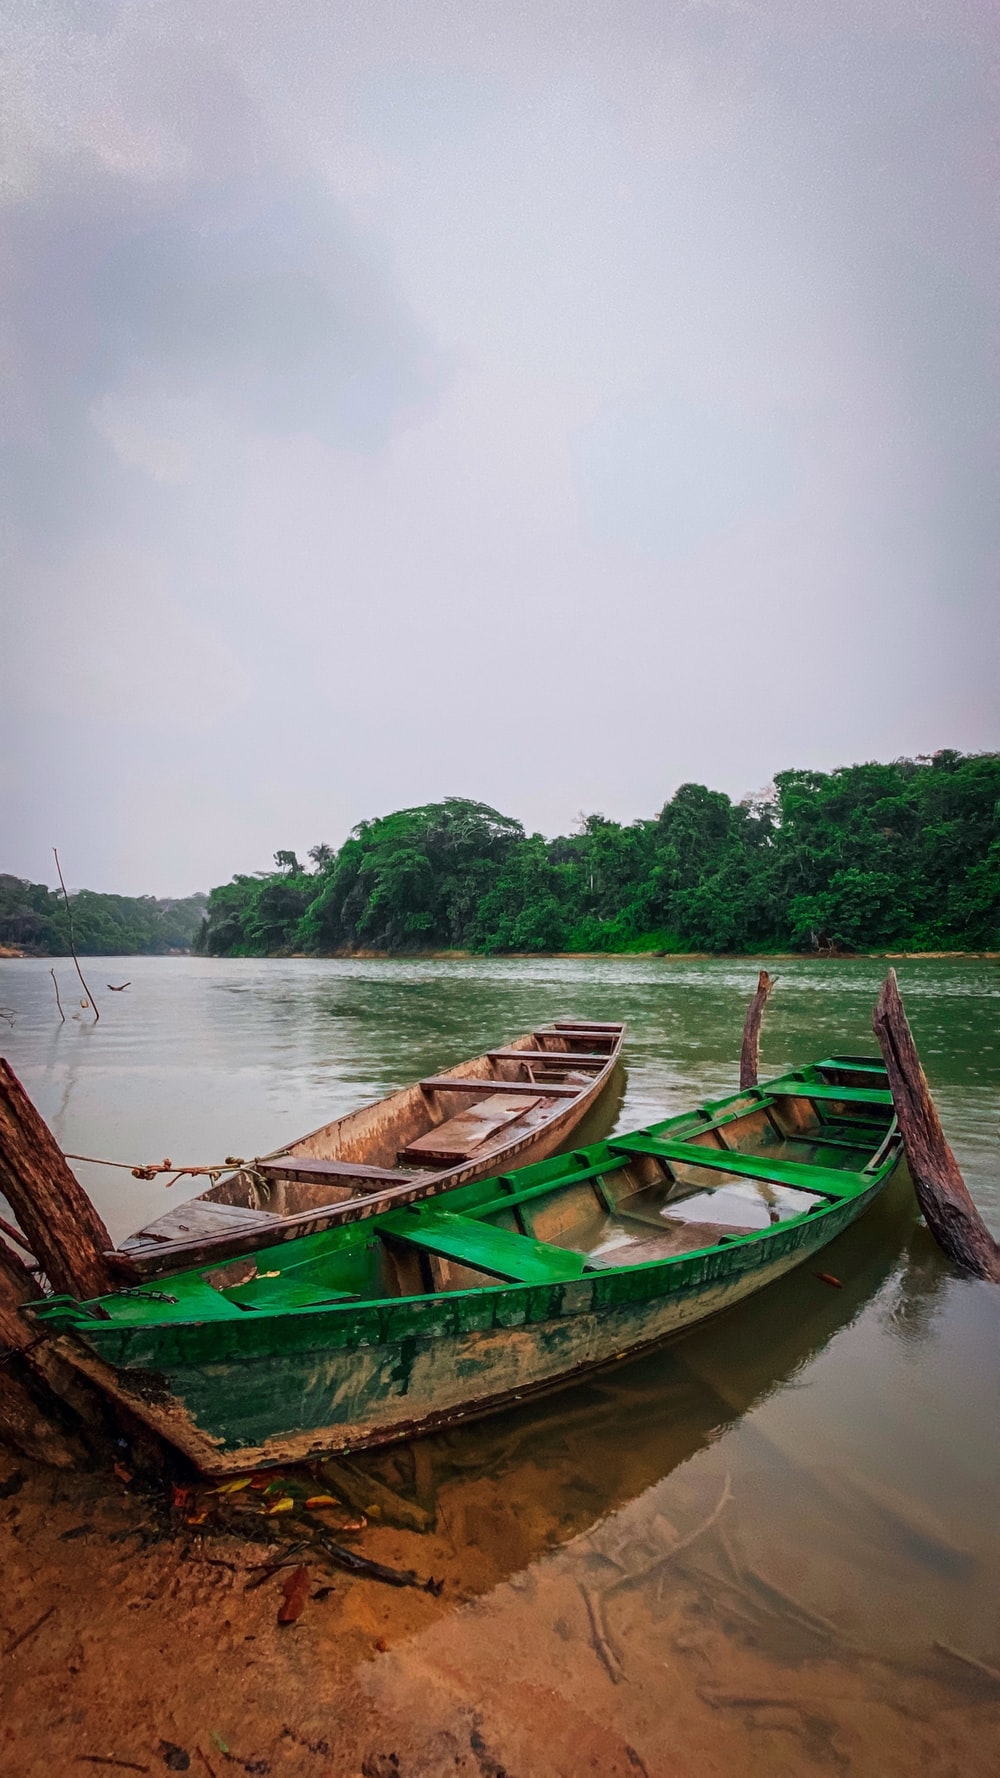 green and brown wooden boat on body of water during daytime